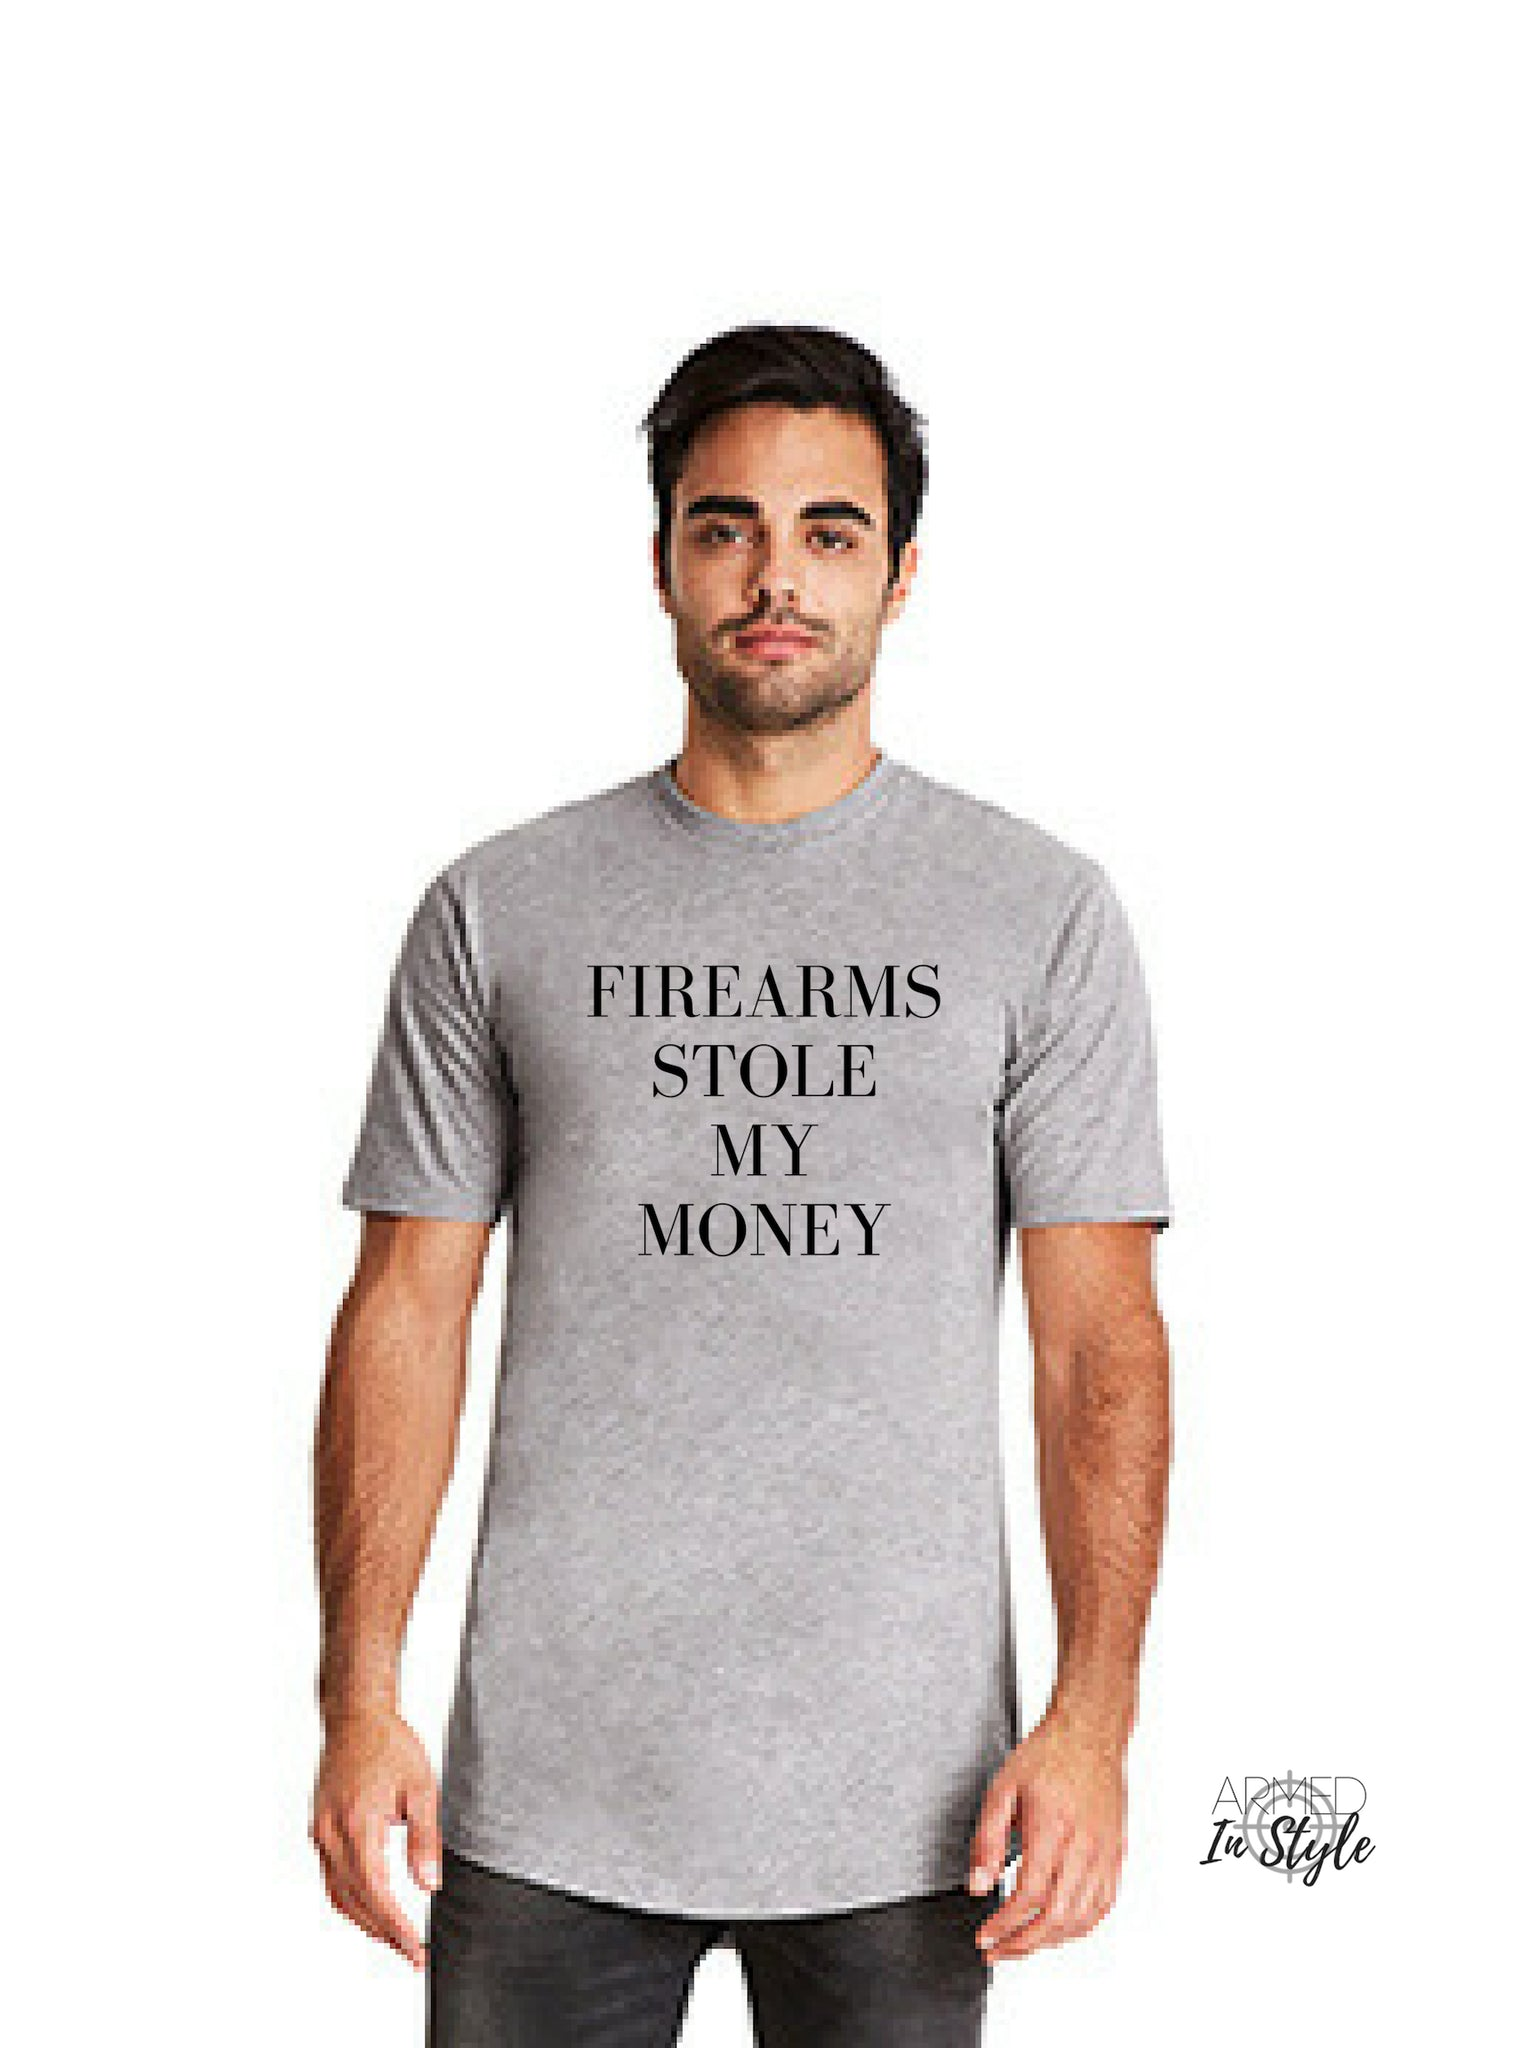 Firearms Stole My Money, Men's Urban T-Shirt